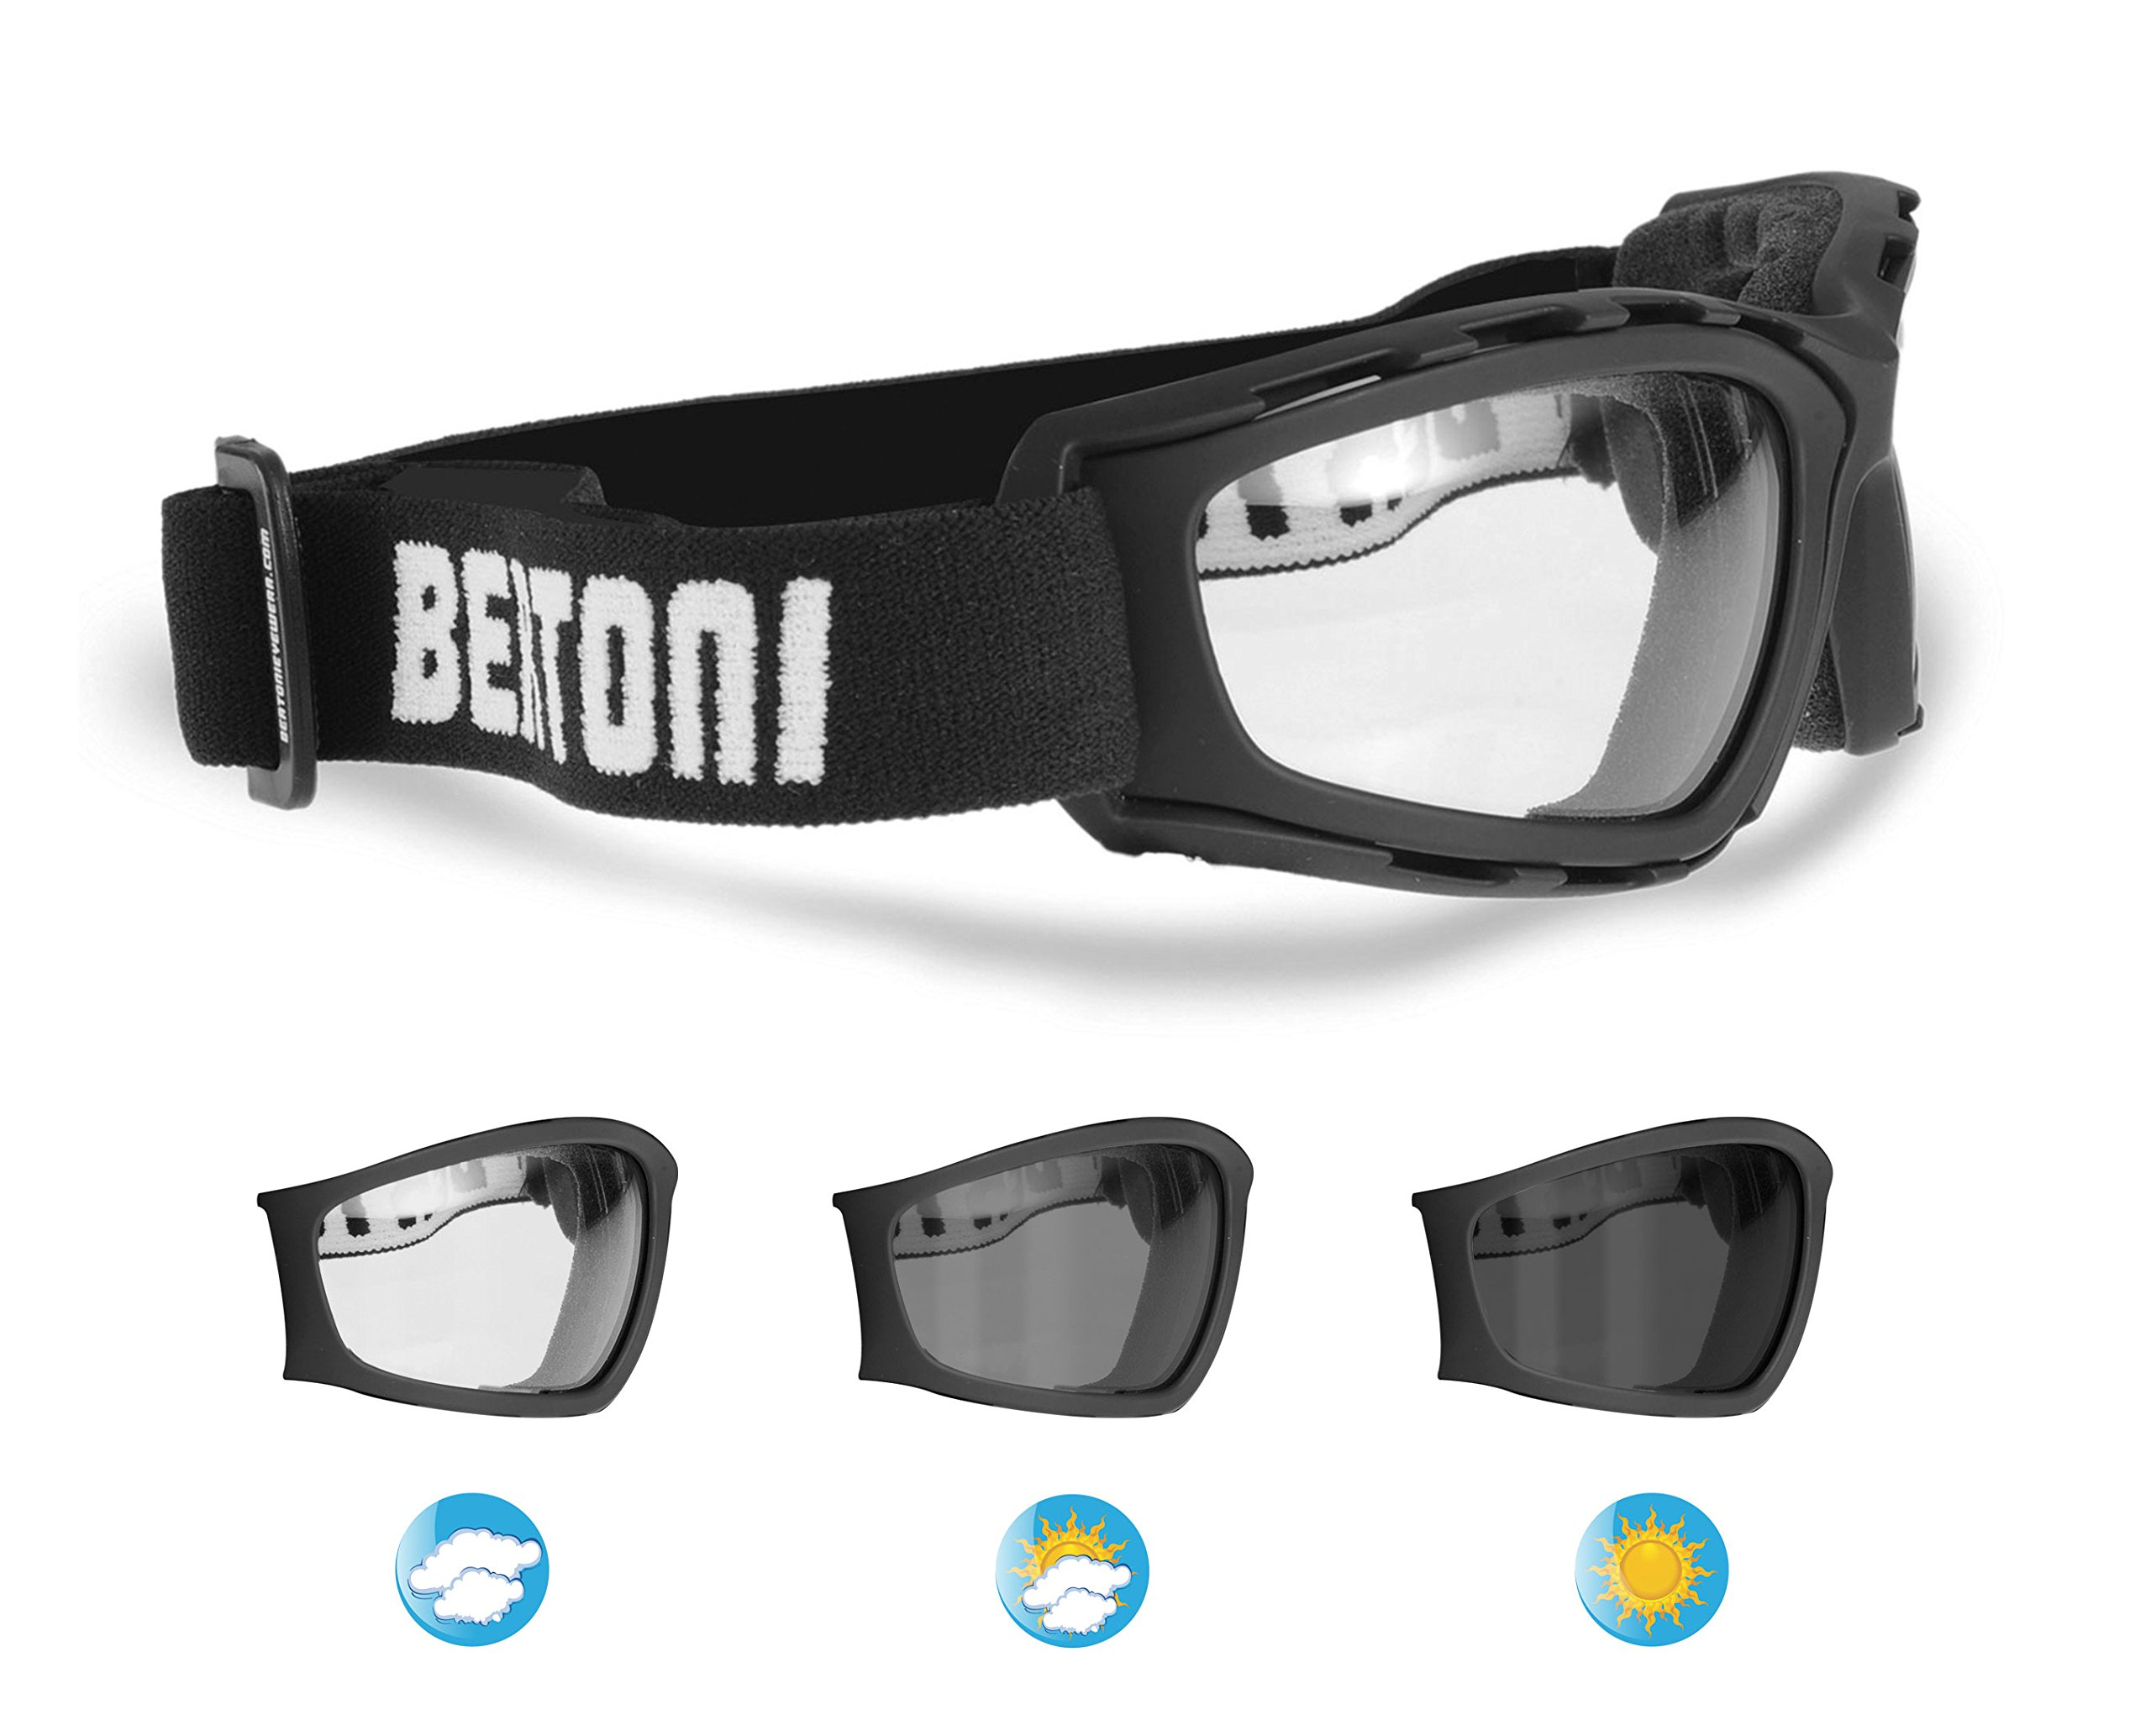 Bertoni Photochromic Motorcycle Goggles - Extreme Sports Sunglasses - Powersports Goggles - Antifog Lens - F120A by Italy Wraparound Windproof Padded Glasses